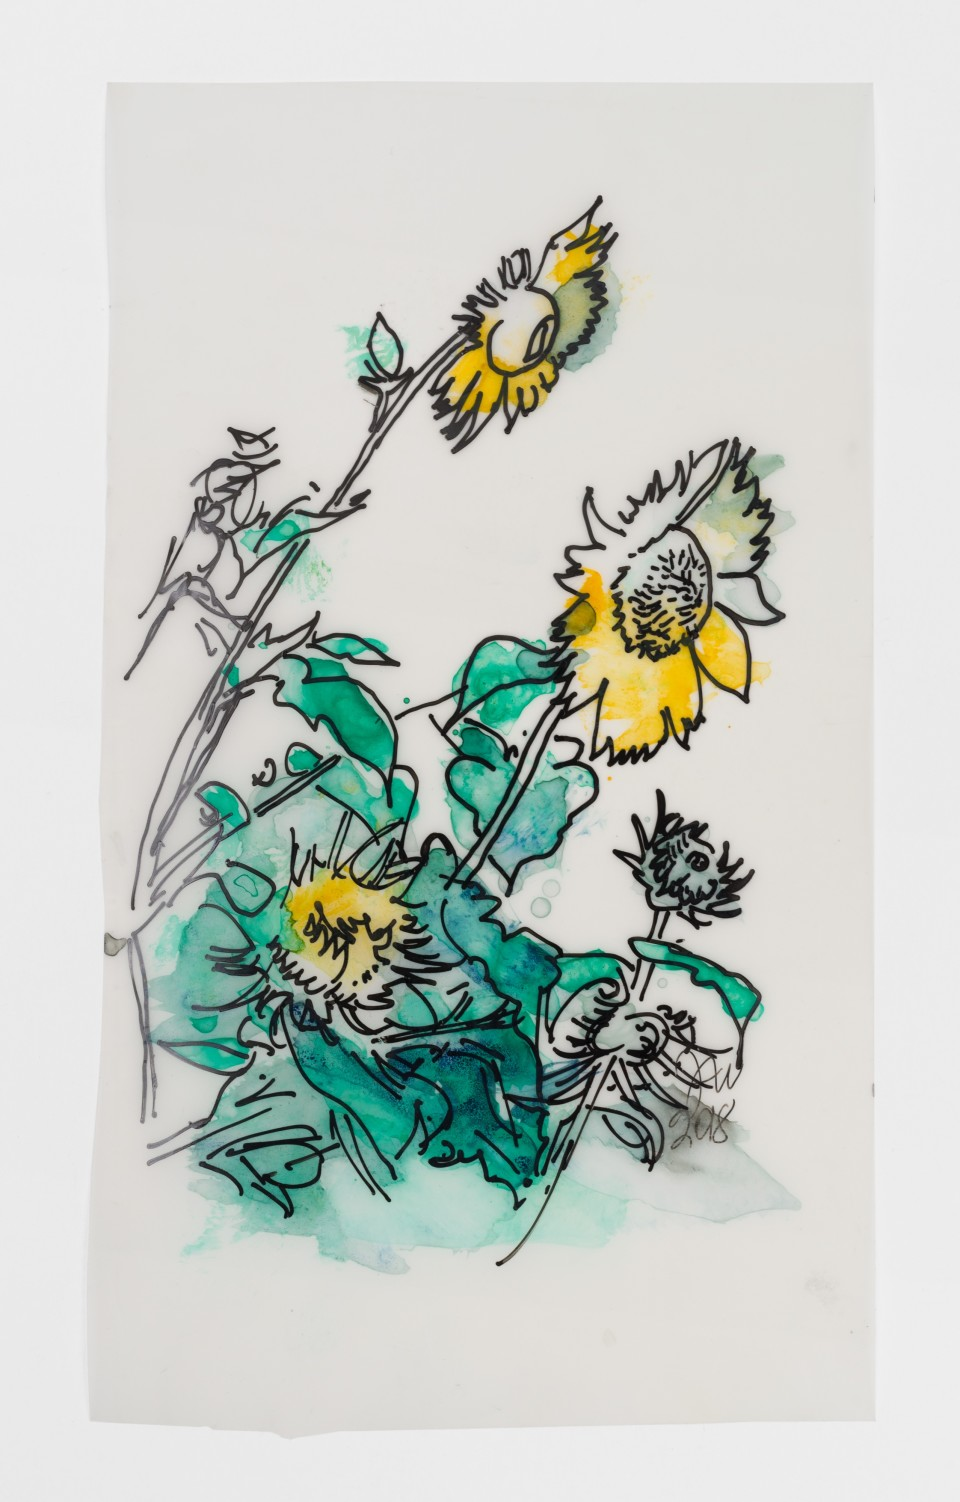 Image: Jimmy Wright  Sunflower No. 4, 2018  signed and dated recto  ink on Yupo Paper  10 x 5 3/4 inches (25.4 x 14.6 cm)